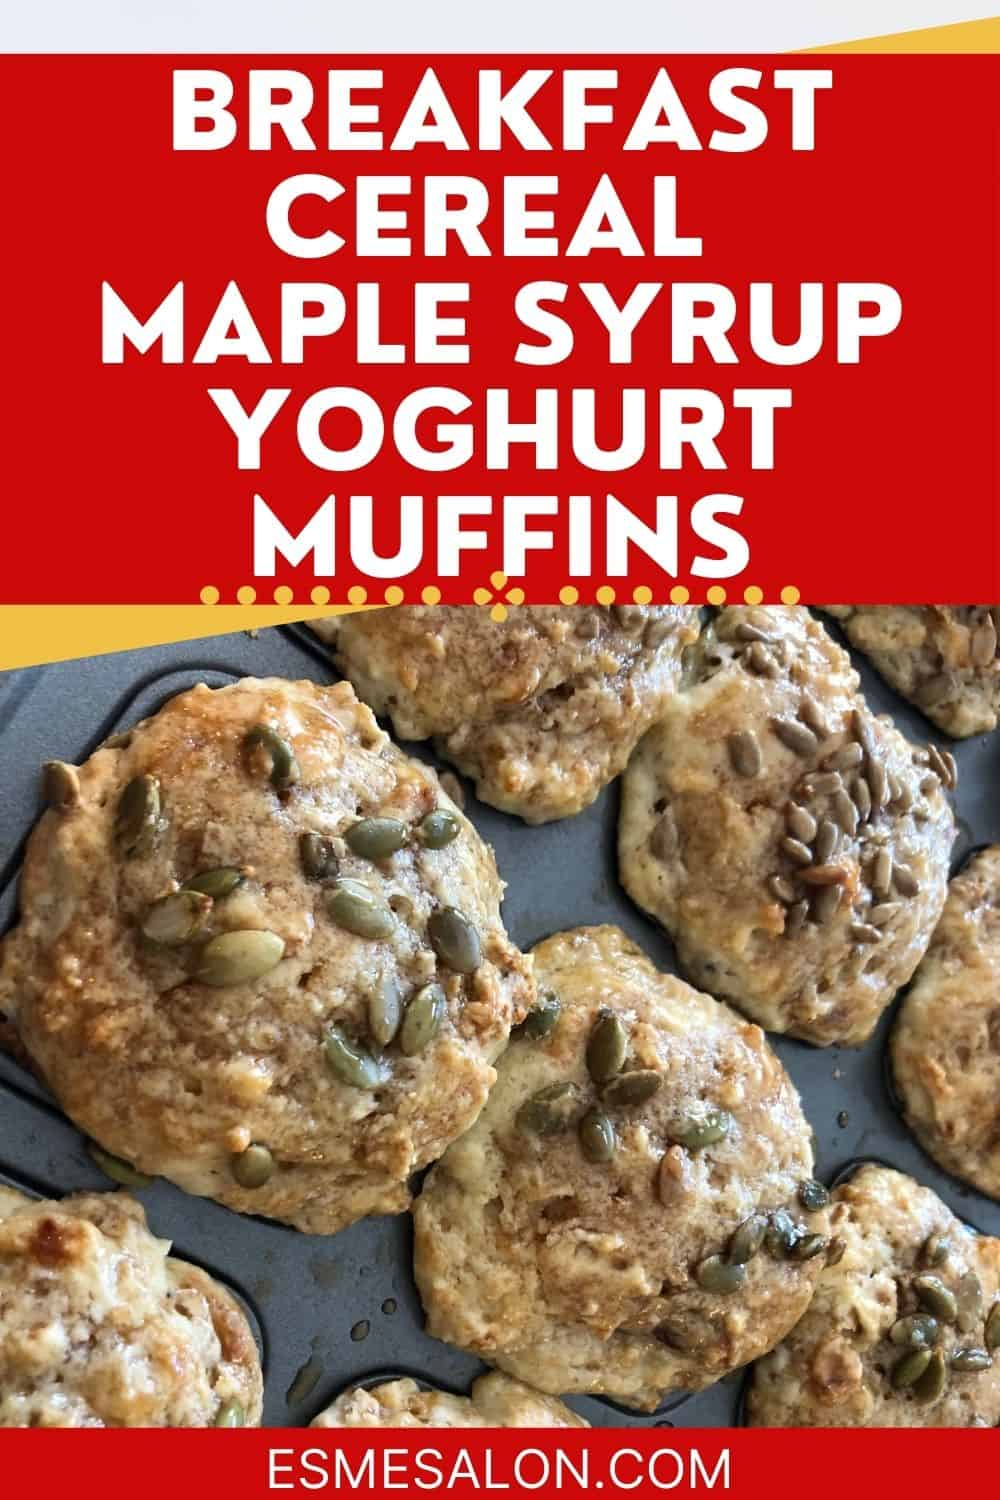 Baked Cereal Maple Syrup Yoghurt Muffins in muffin pan